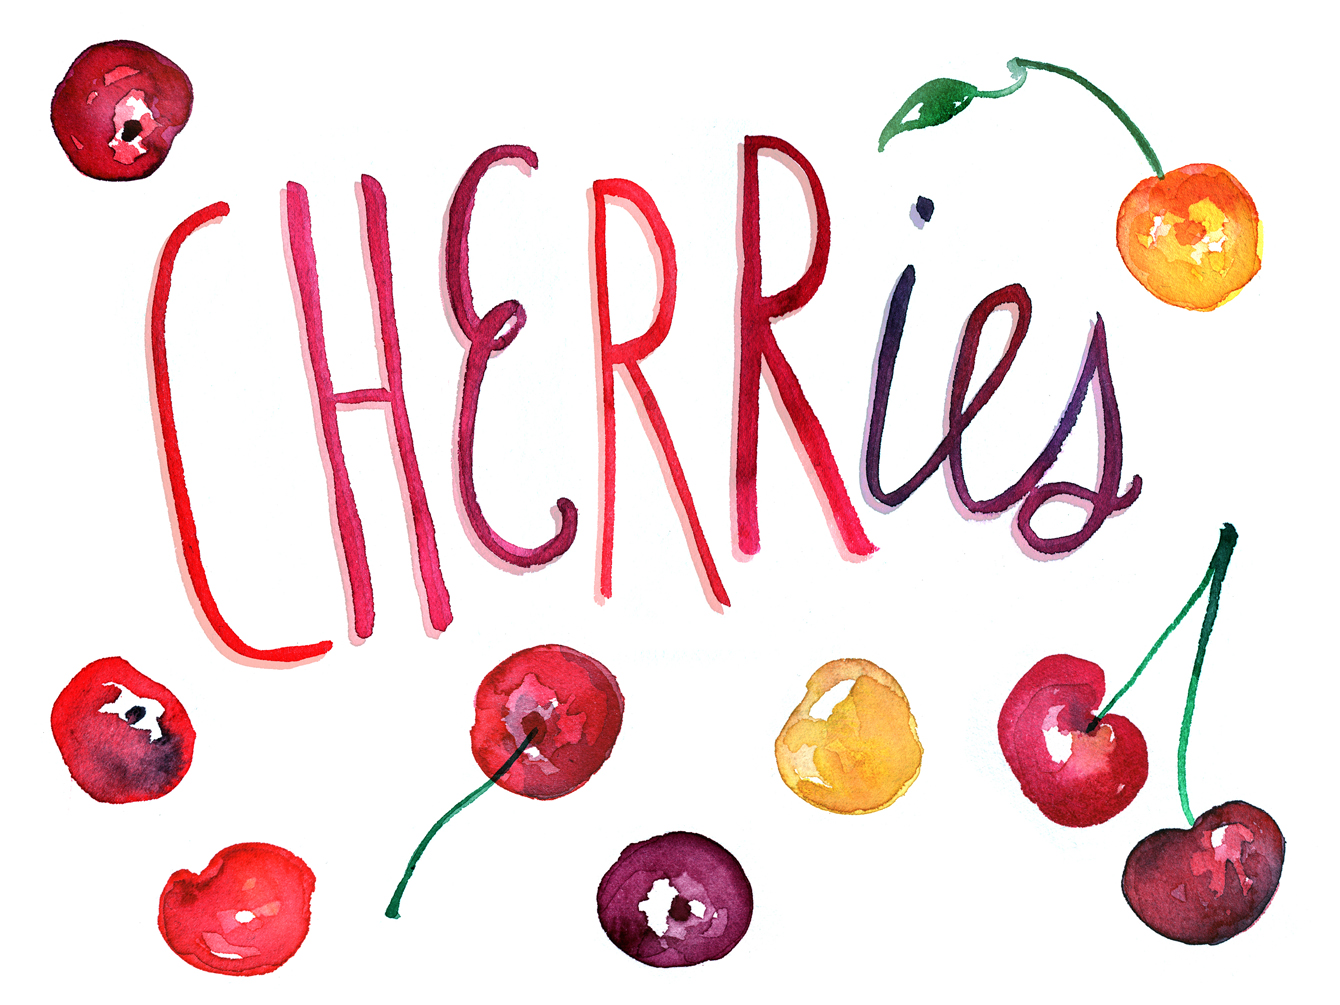 cherries watercolor illustration